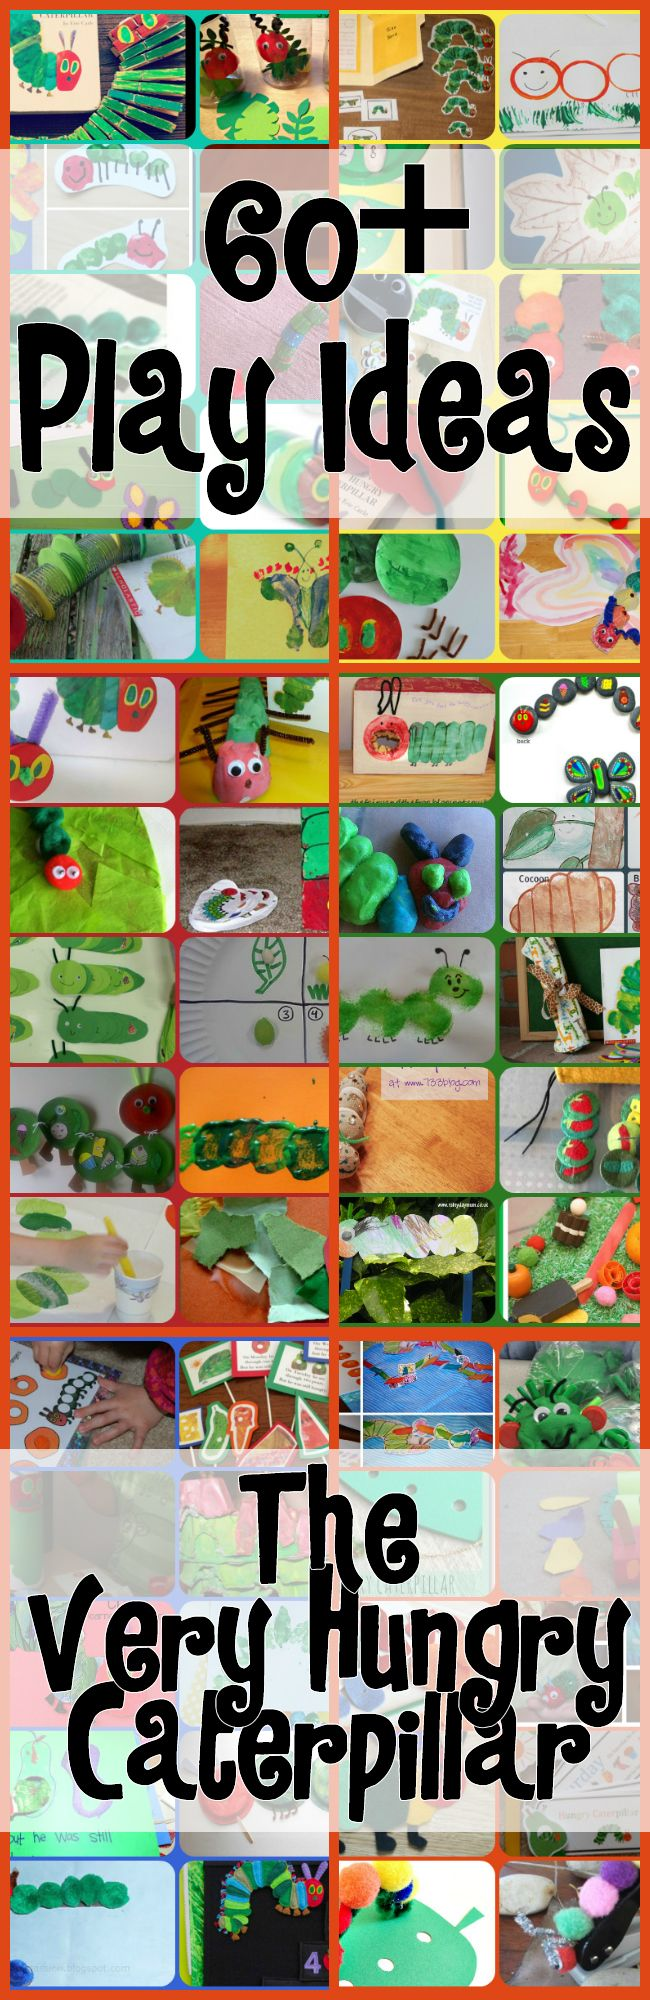 60+ Play Ideas Based On The Very Hungry Caterpillar Book By Eric Carle **#hungrycaterillar